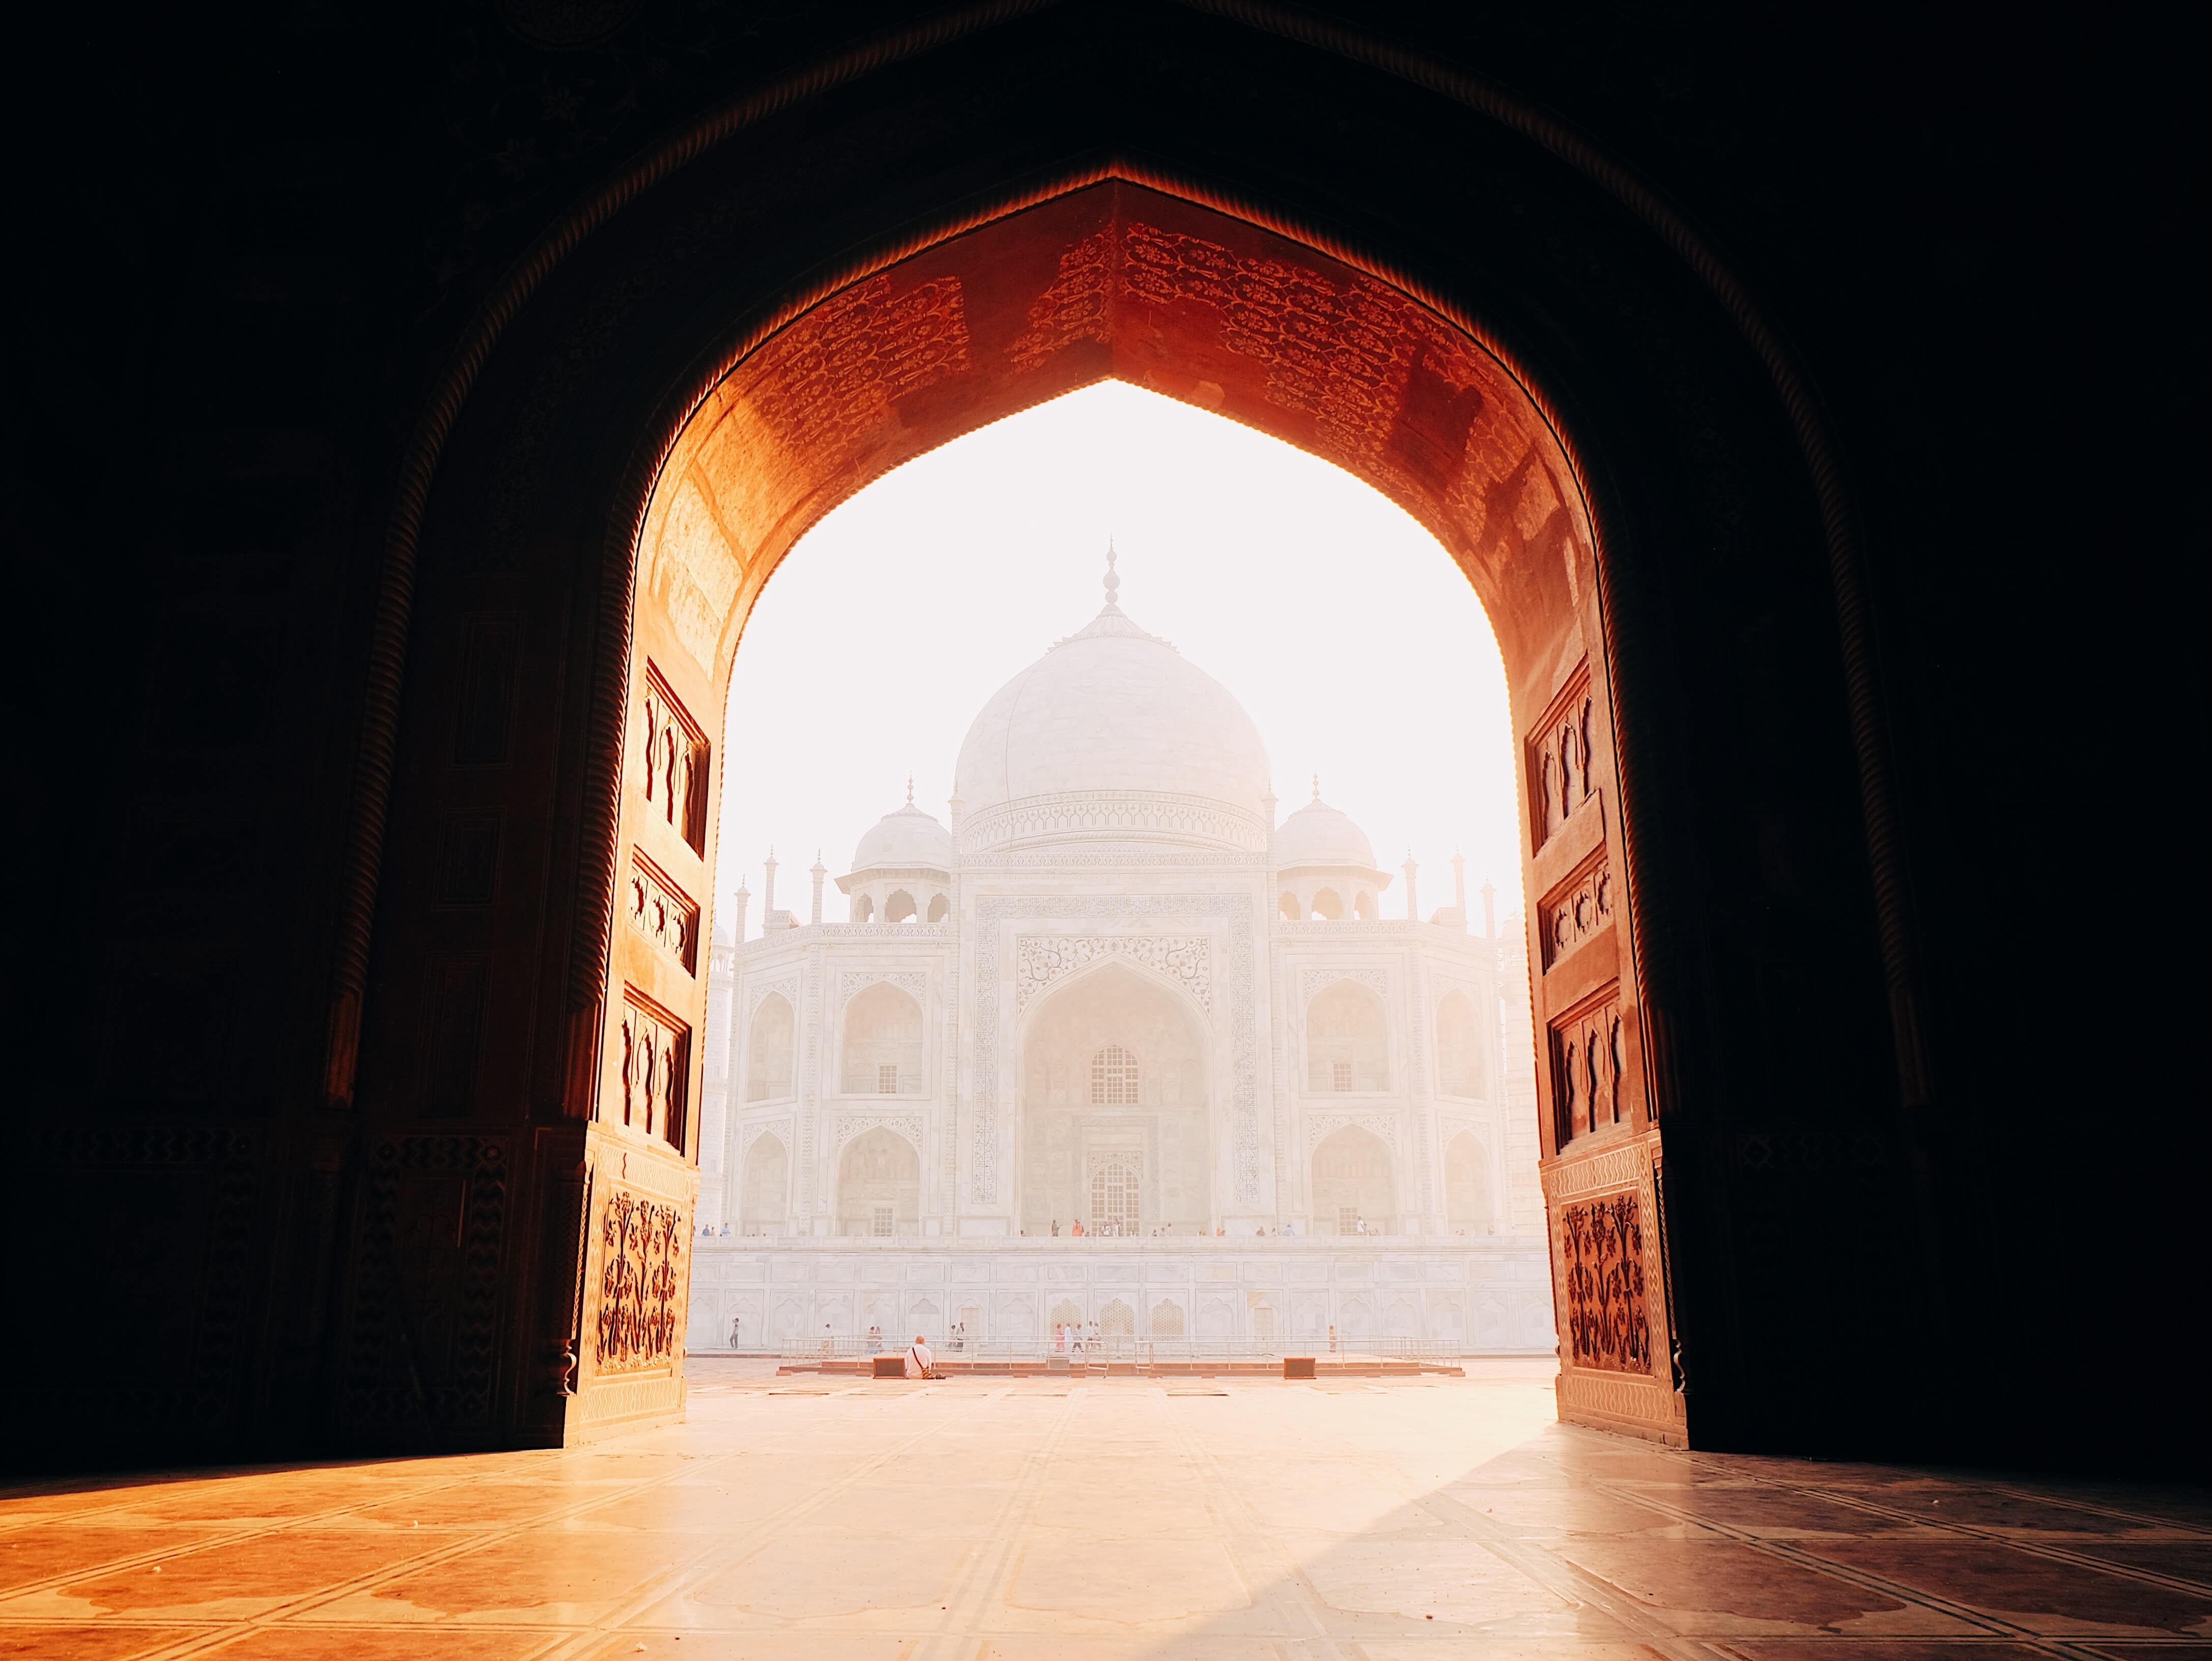 Taj Mahal through doorway